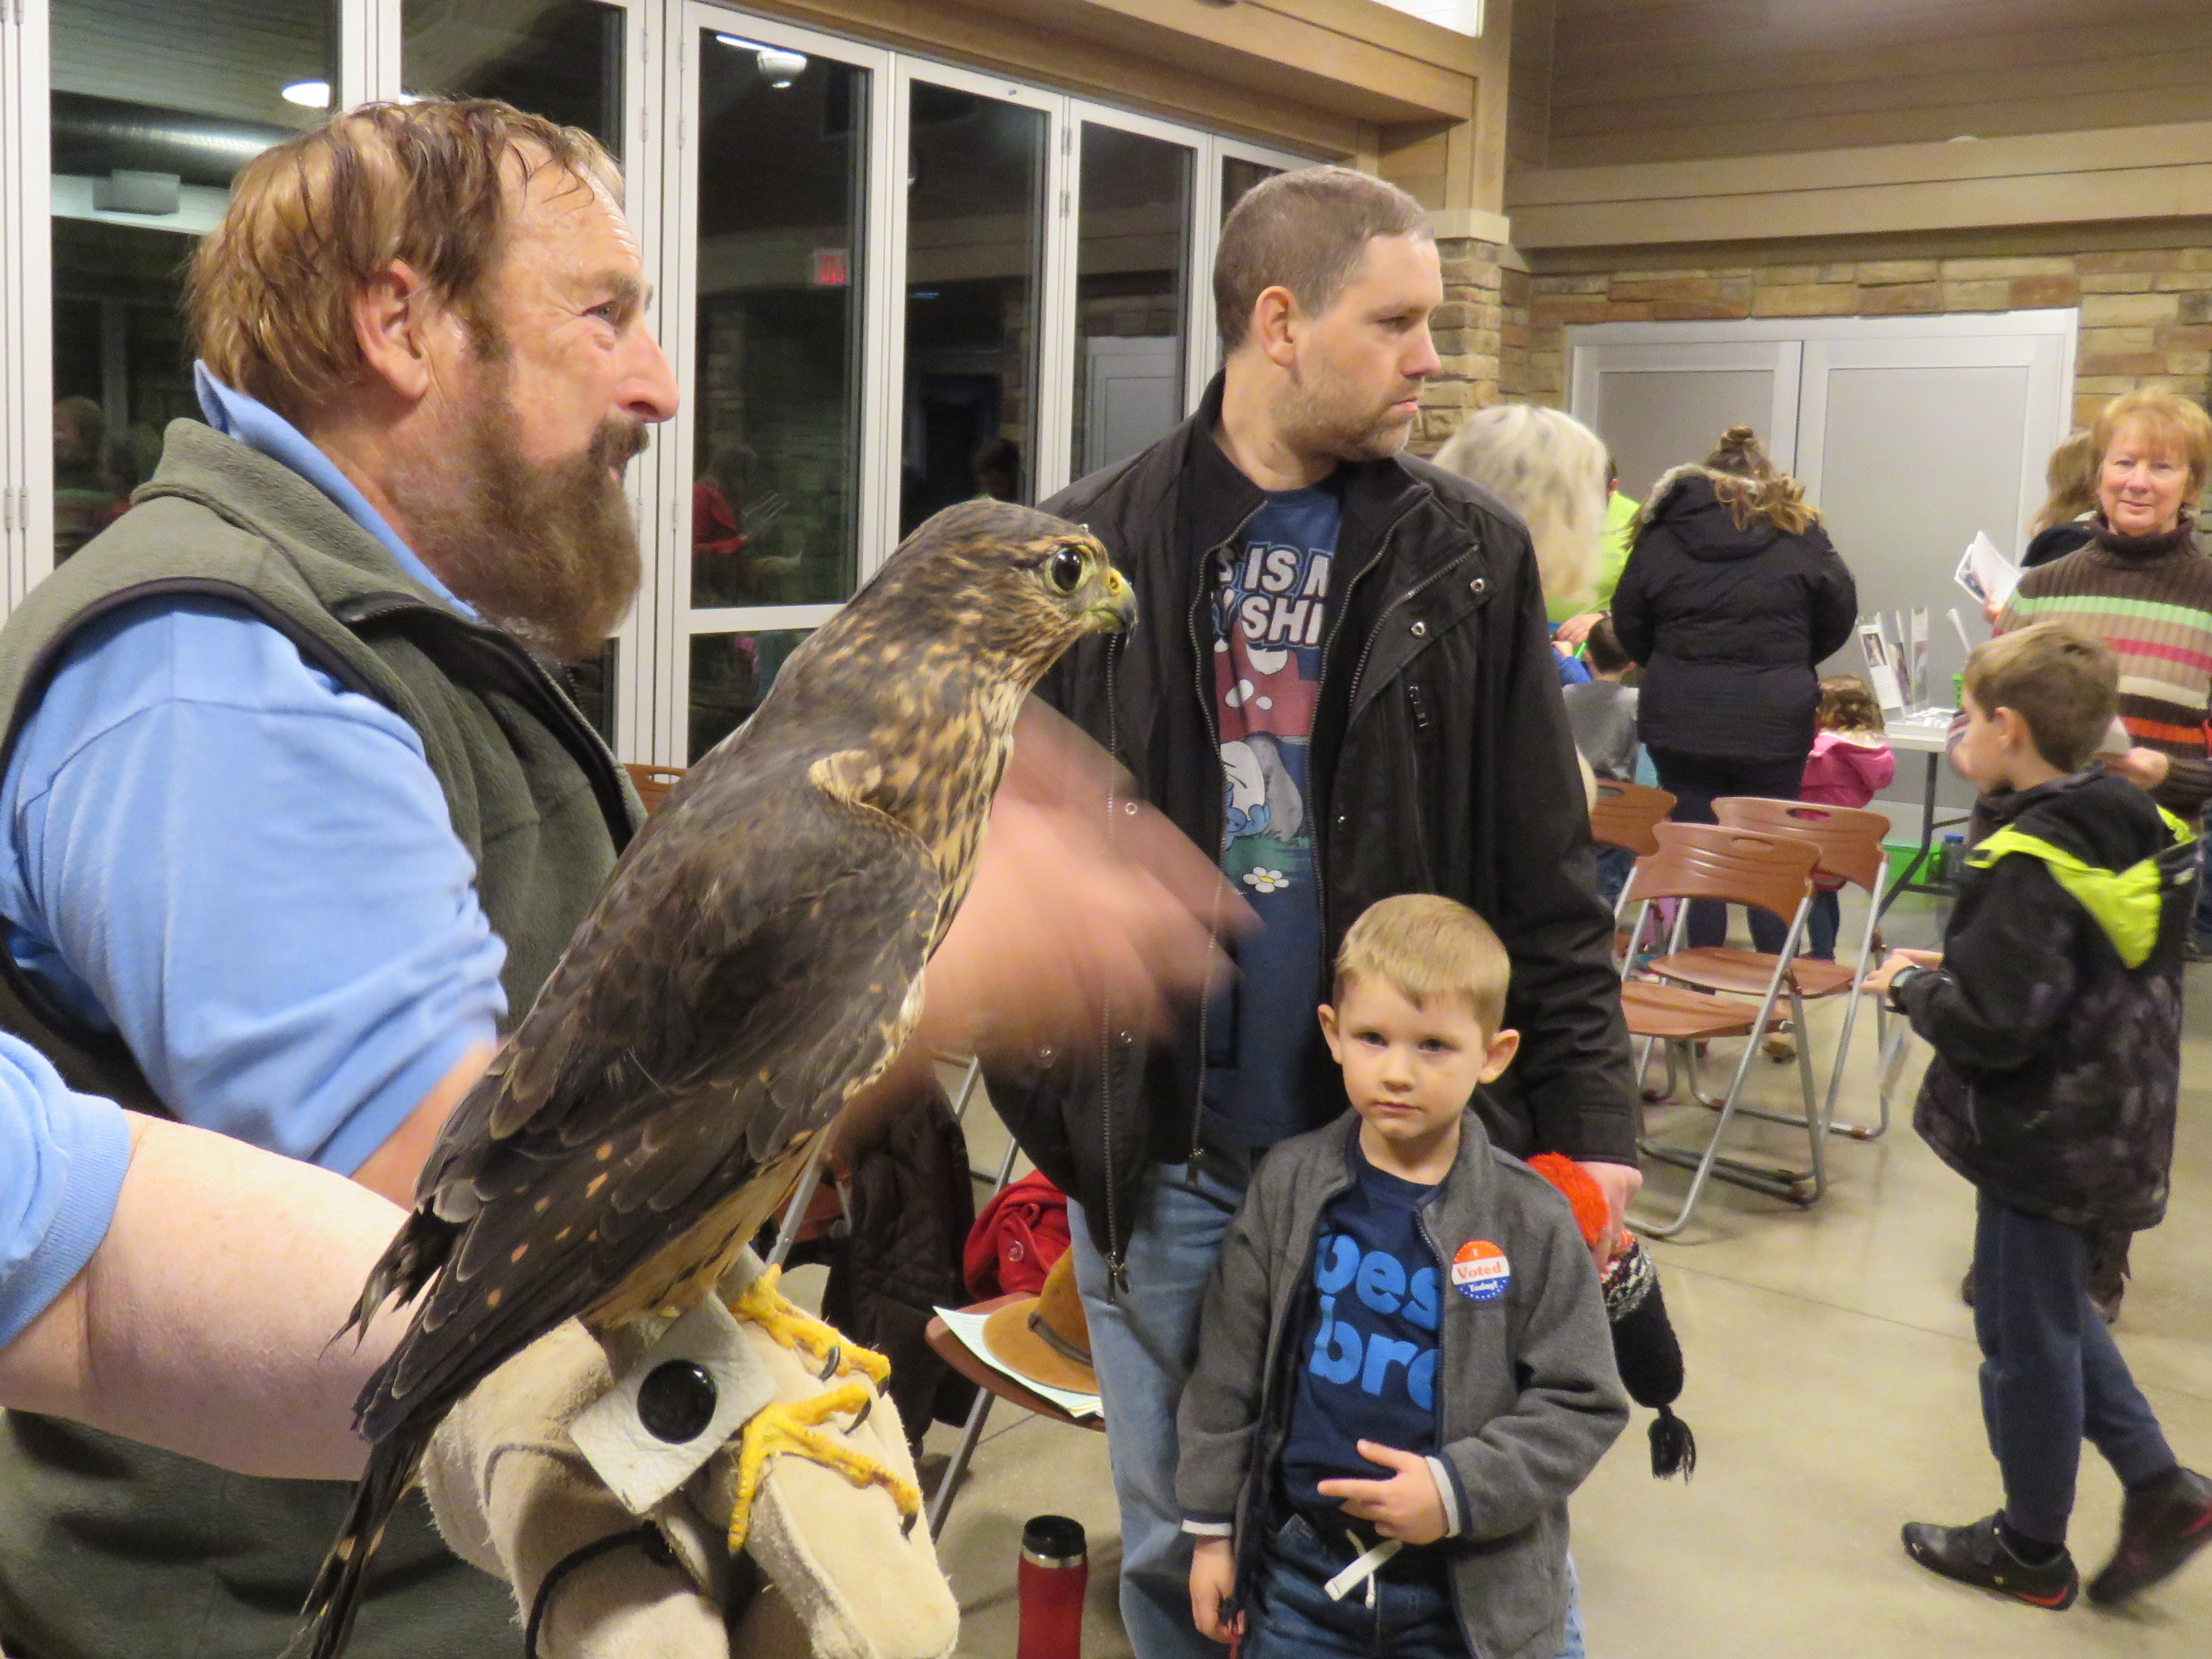 A Merlin is perched on a man's gloved hand. A young boy looks up at the merlin, who is dark brown in color with heavy, dark streaking.